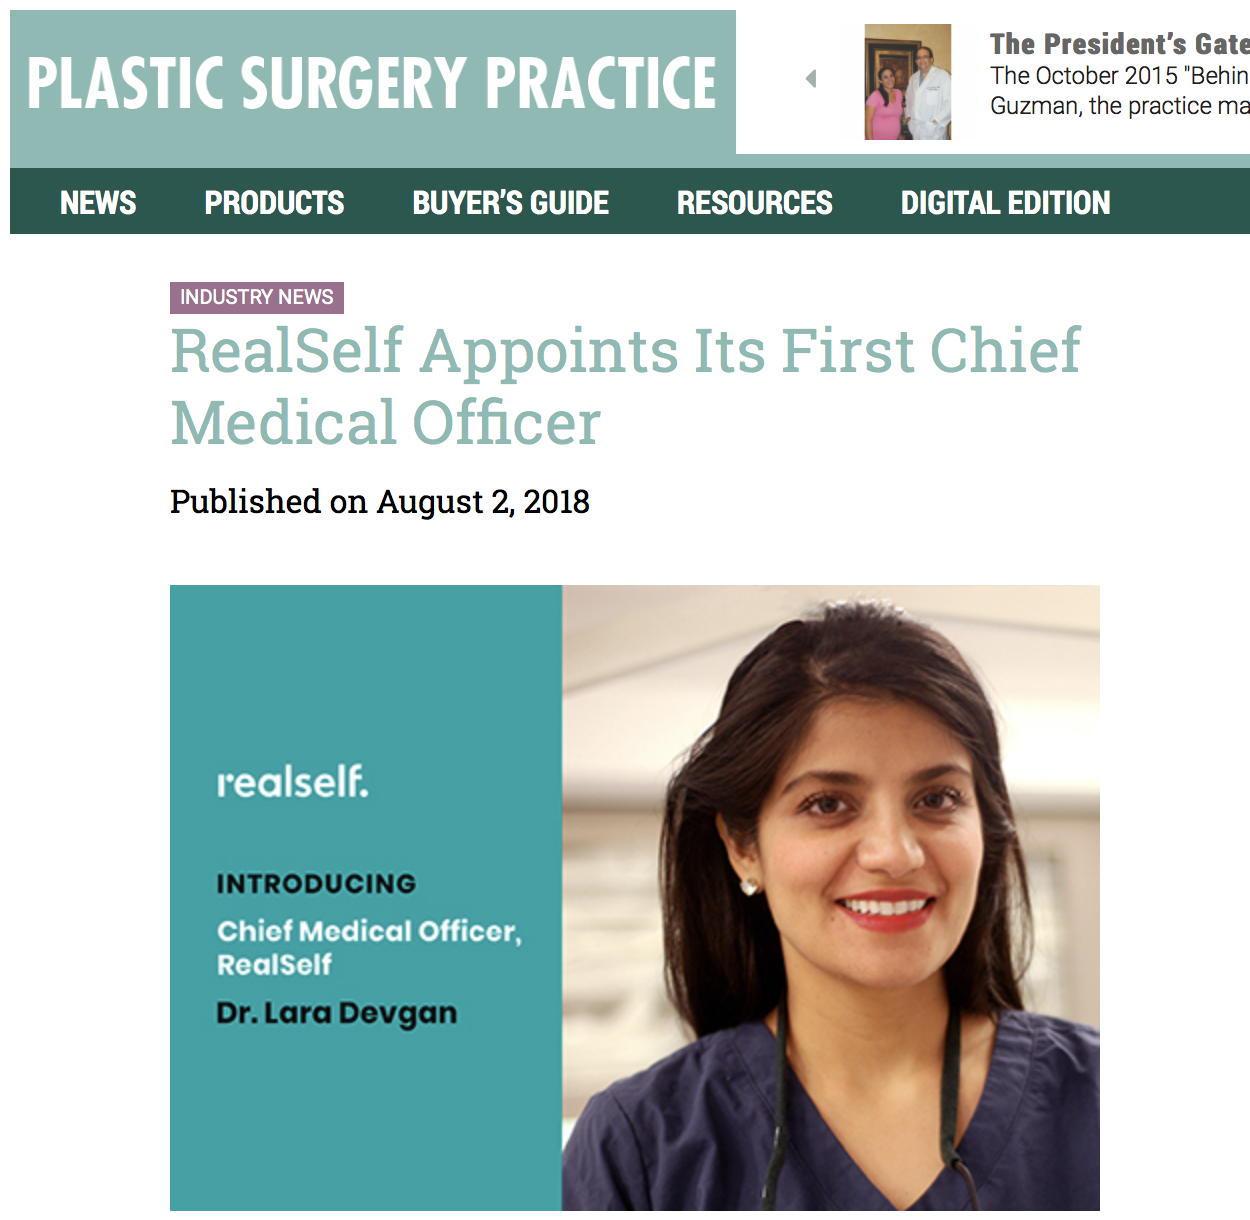 Plastic Surgery Practice featured Dr. Devgan's appointment to Chief Medical Officer at RealSelf, the leading site for information on cosmetic surgery